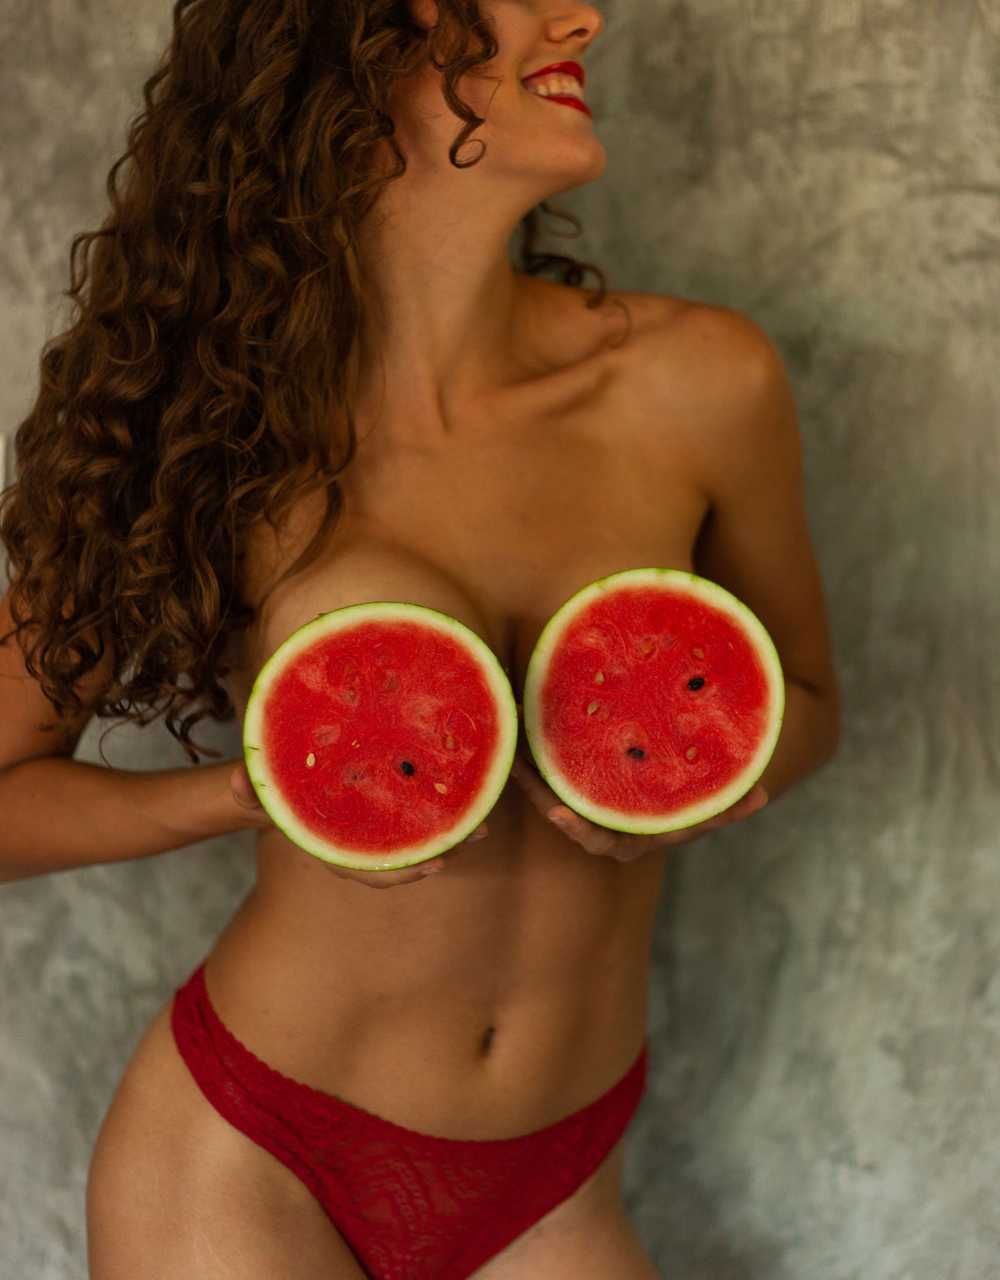 topless woman with sliced orange on her breast